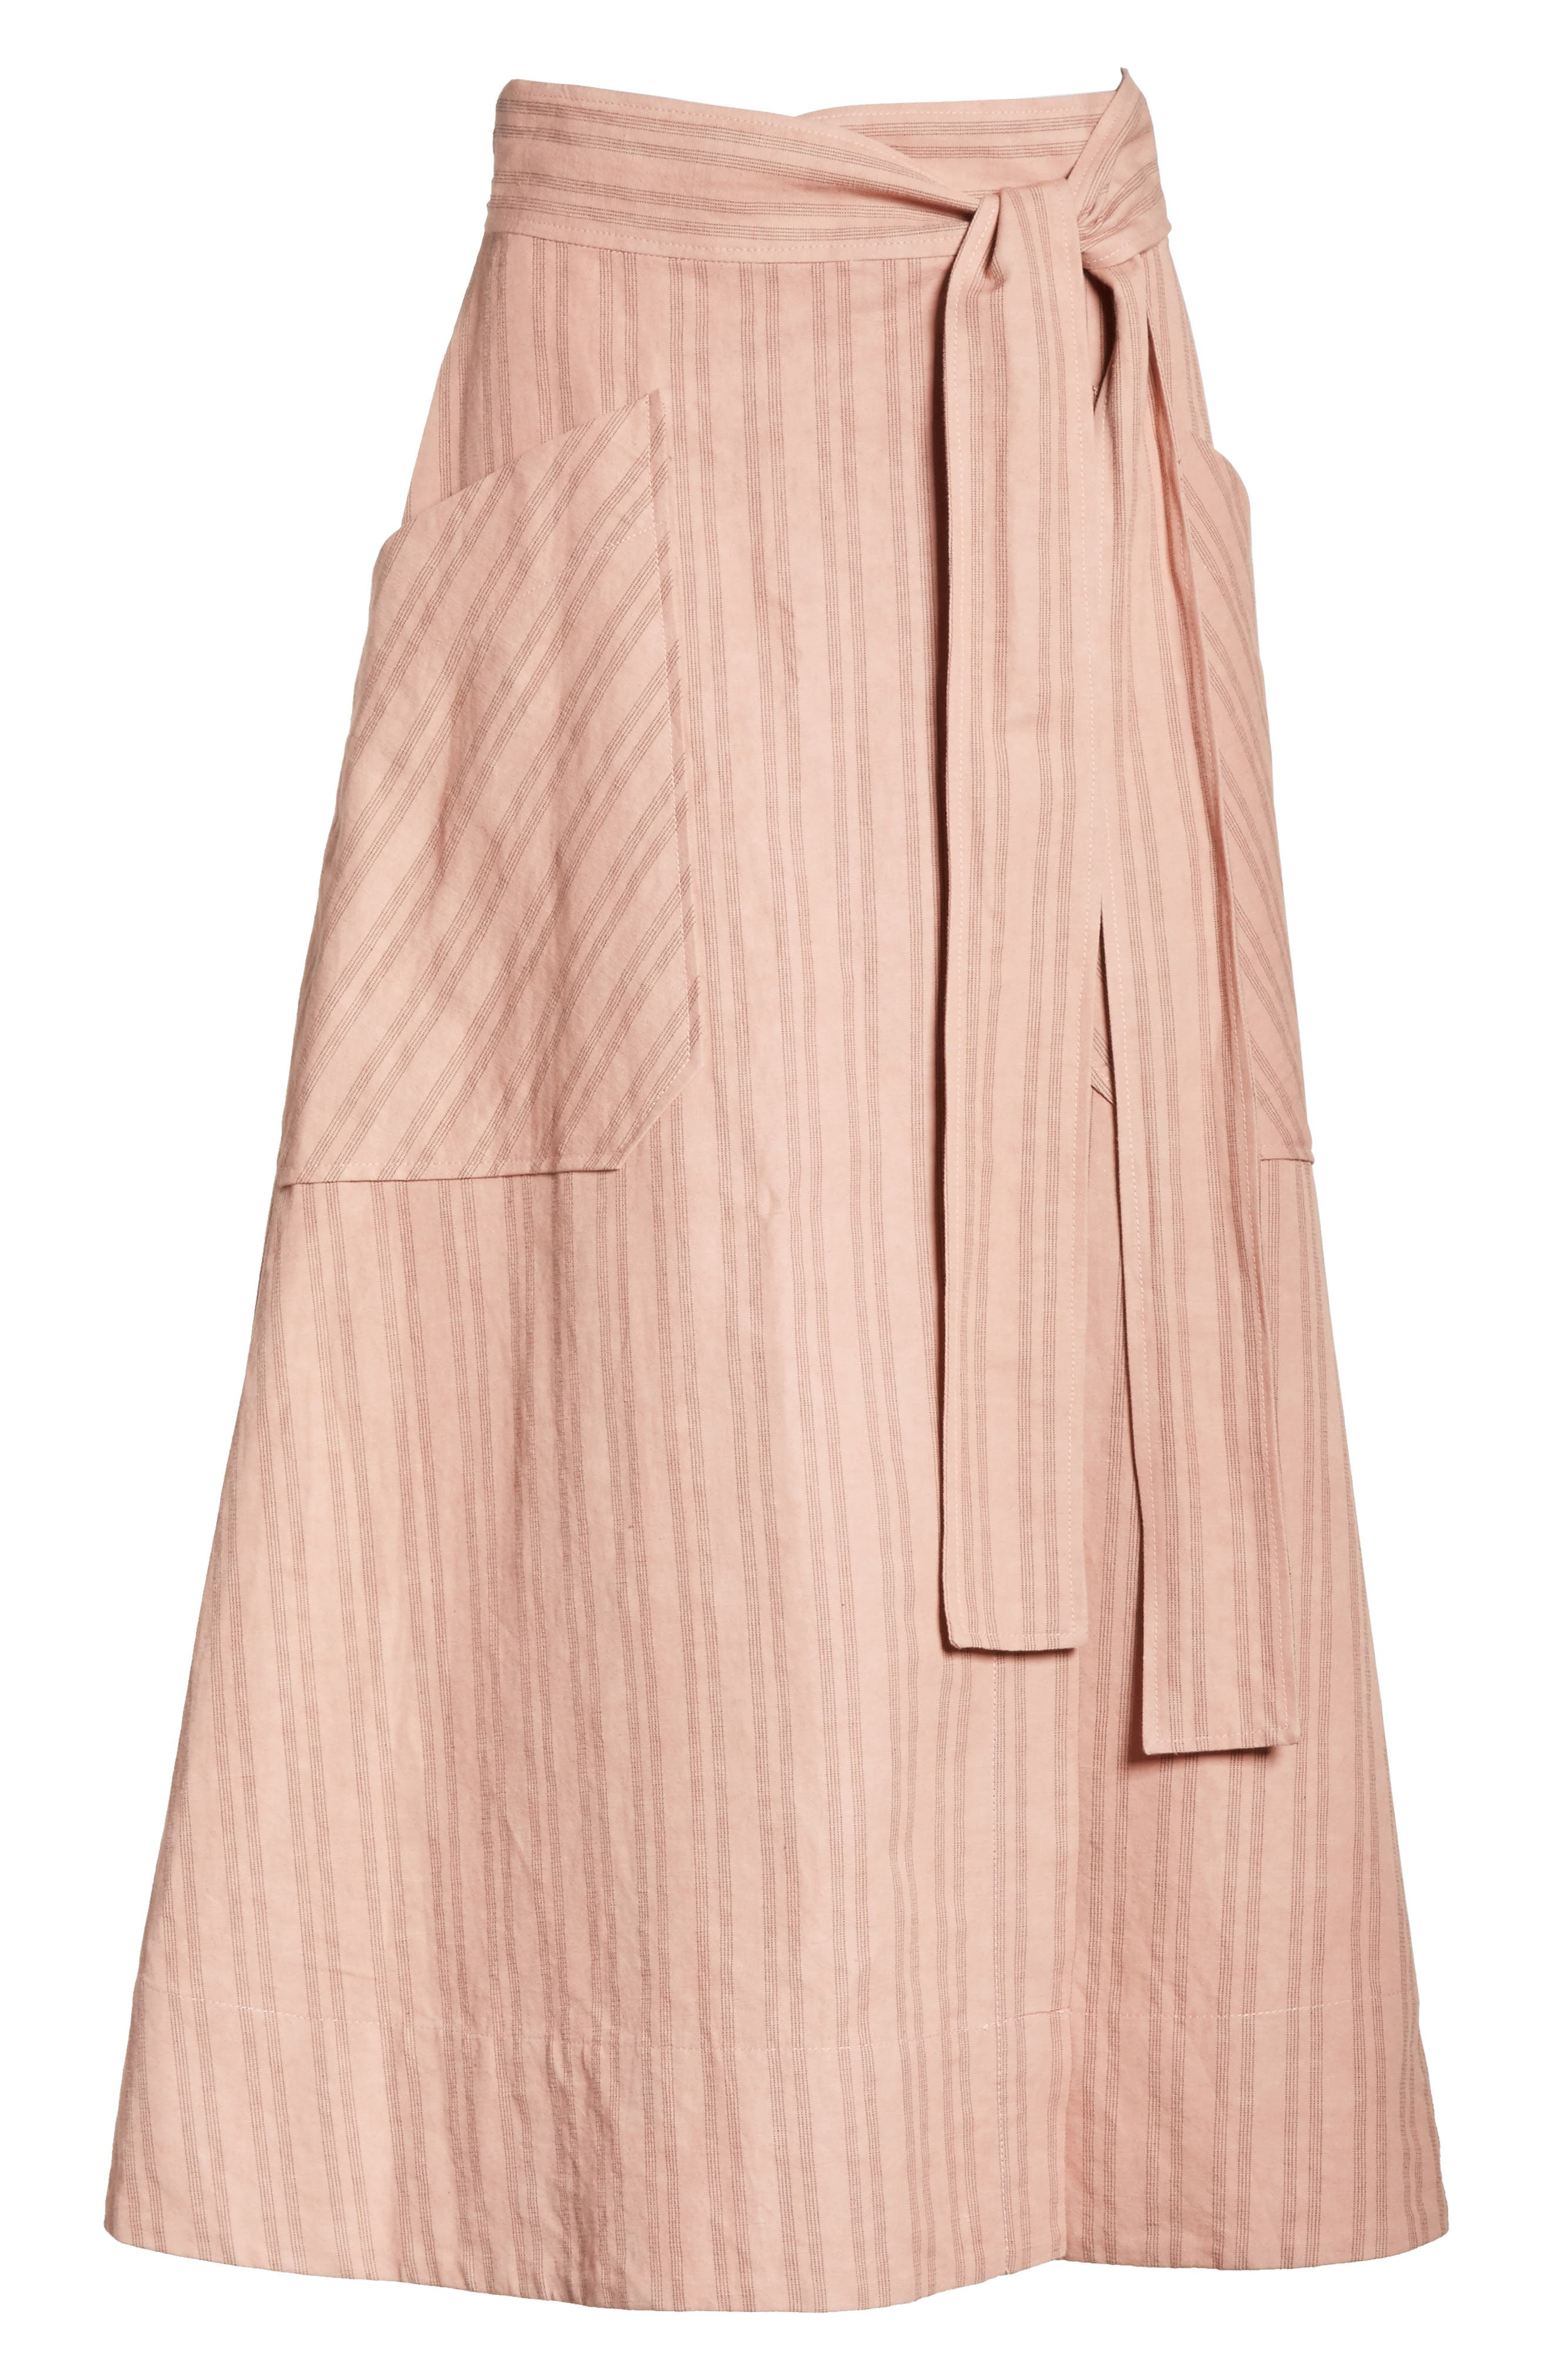 Stripe Wrap Midi Skirt,                             Alternate thumbnail 6, color,                             Rose Hip/ Black